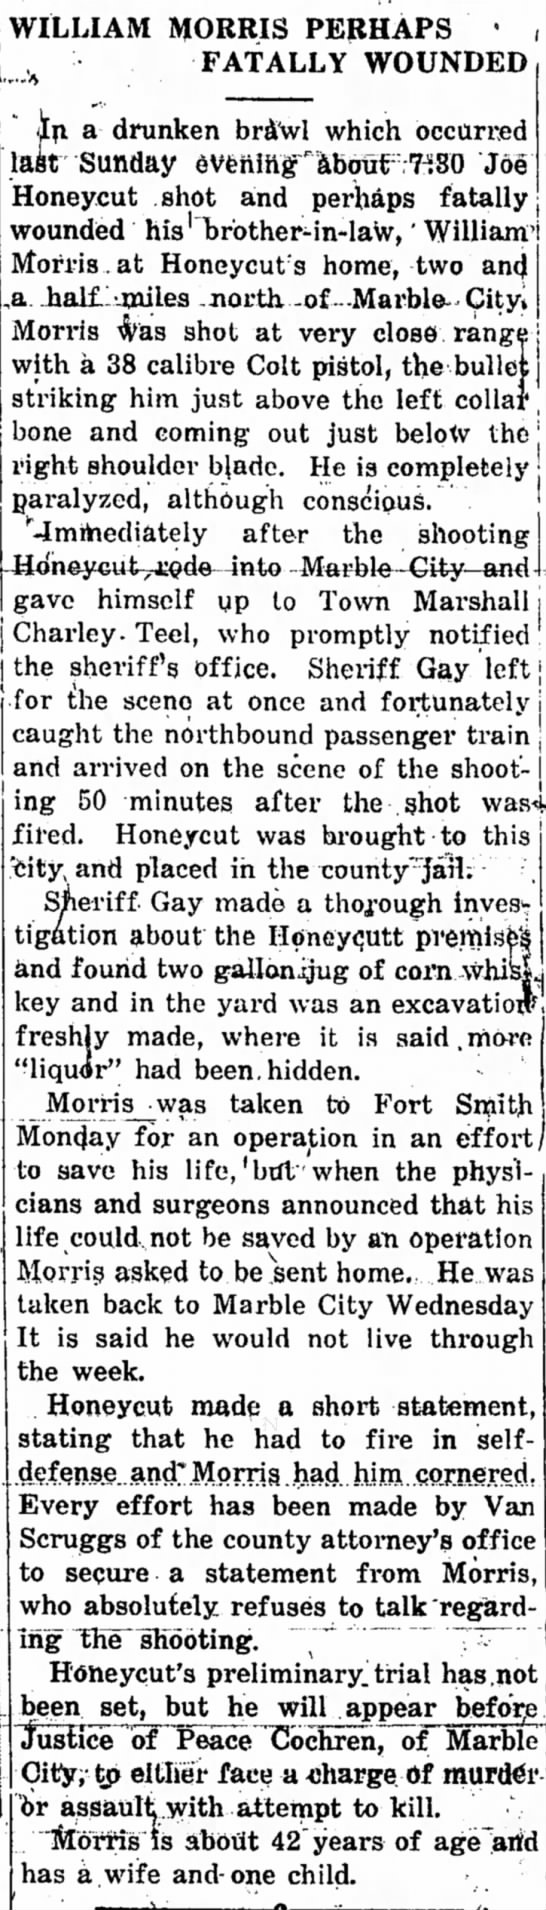 Joe Honeycutt shoots his brother in law William Morris. -